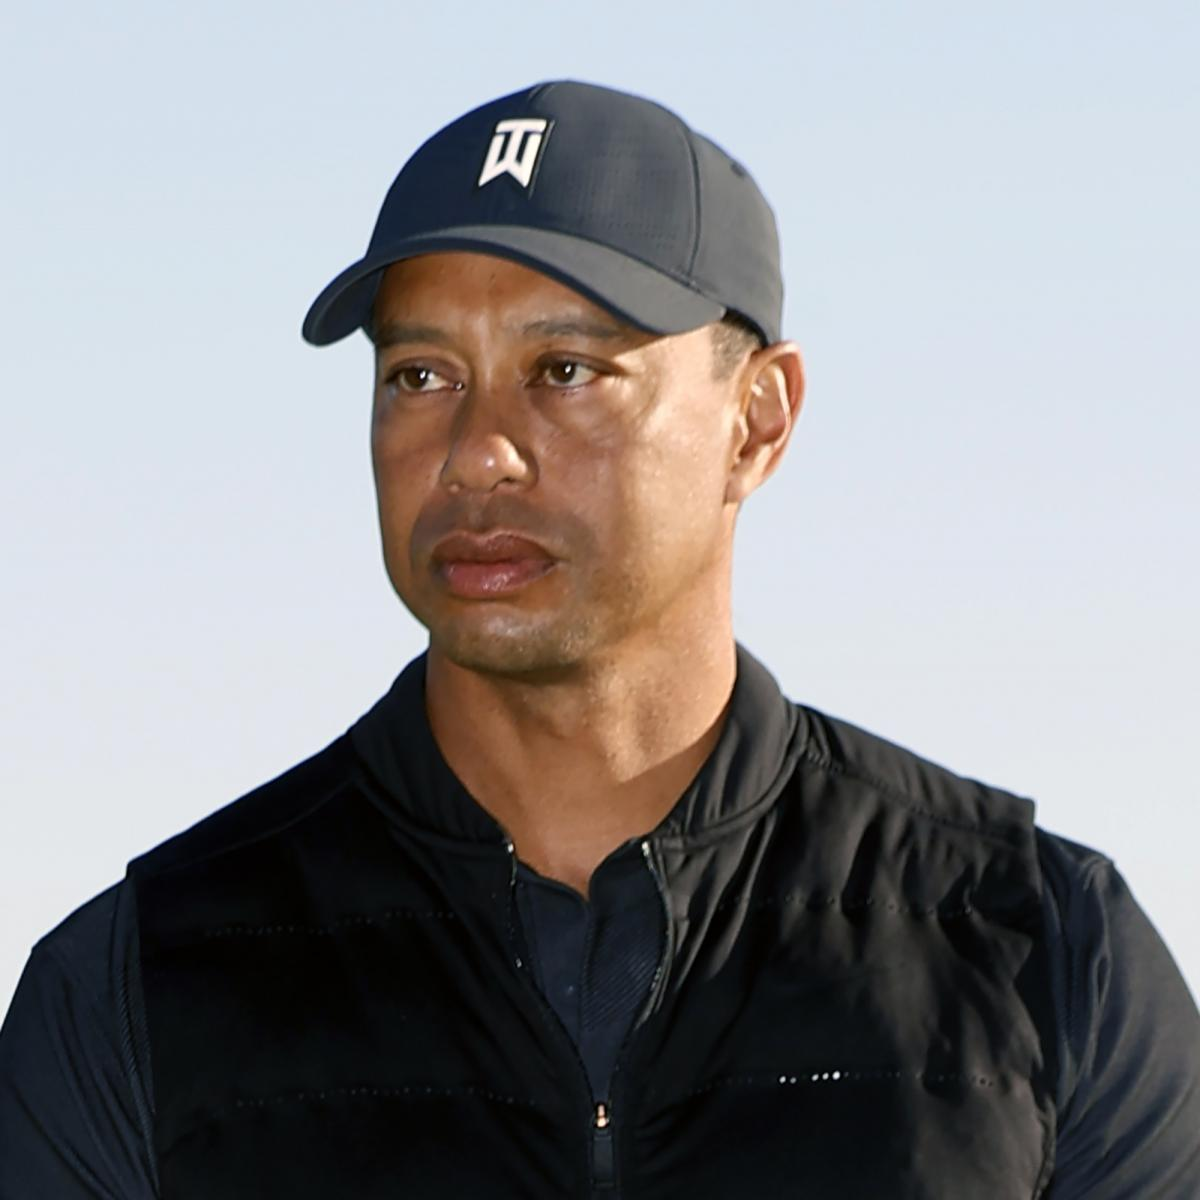 Sheriff Executes Search Warrant for Black Box in Tiger Woods' Car After Crash